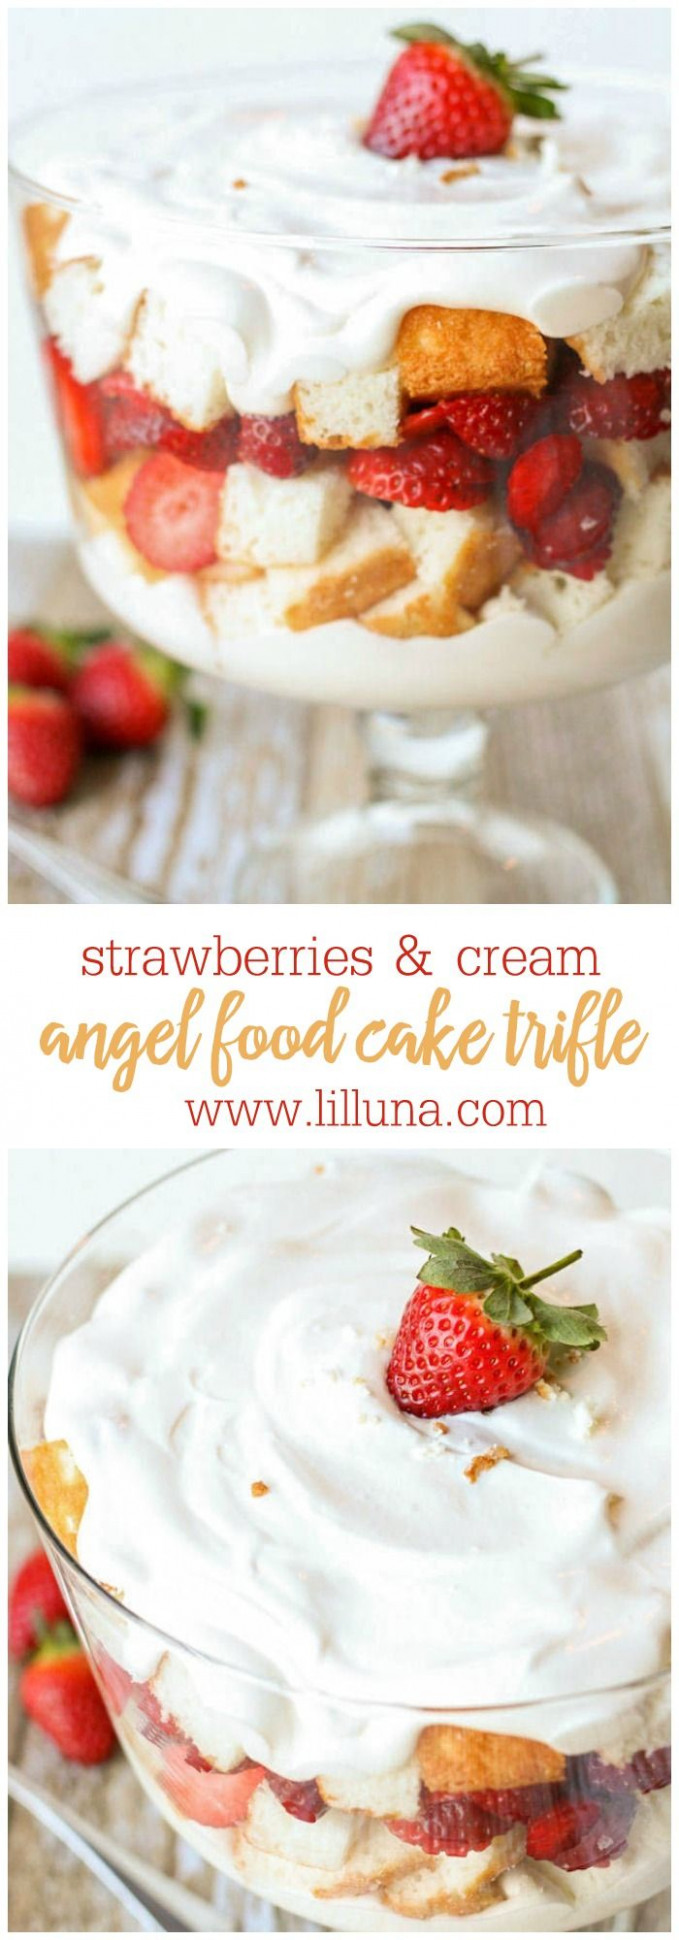 angel food cake trifle recipe with pudding - recipes with angel food cake